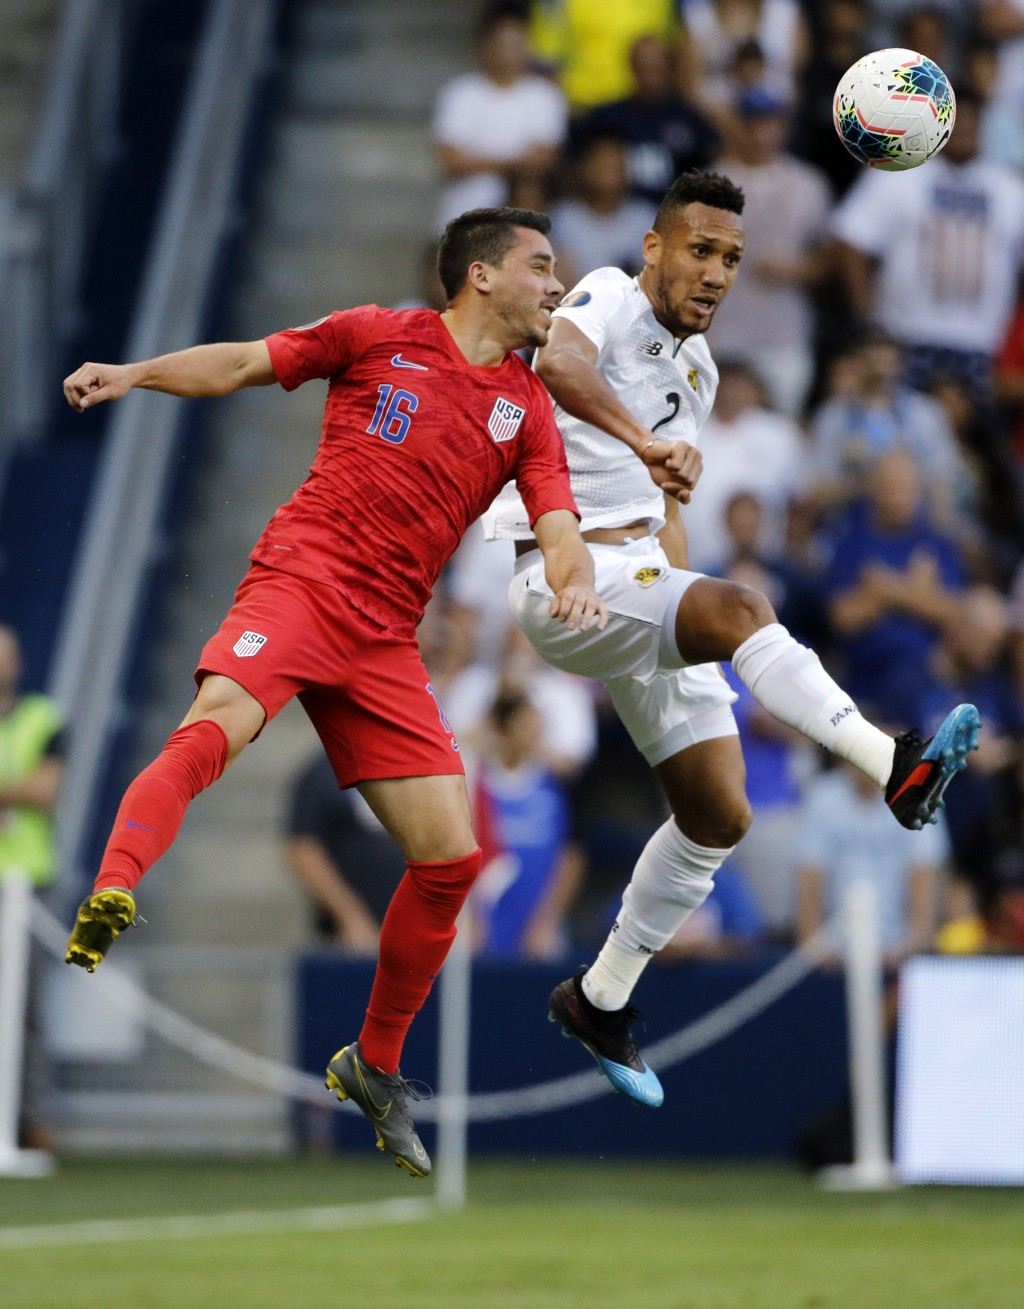 United States' Daniel Lovitz (16) and Panama' Francisco Palacios (2) go up for the ball during the first half of a CONCACAF Gold Cup soccer match in K...